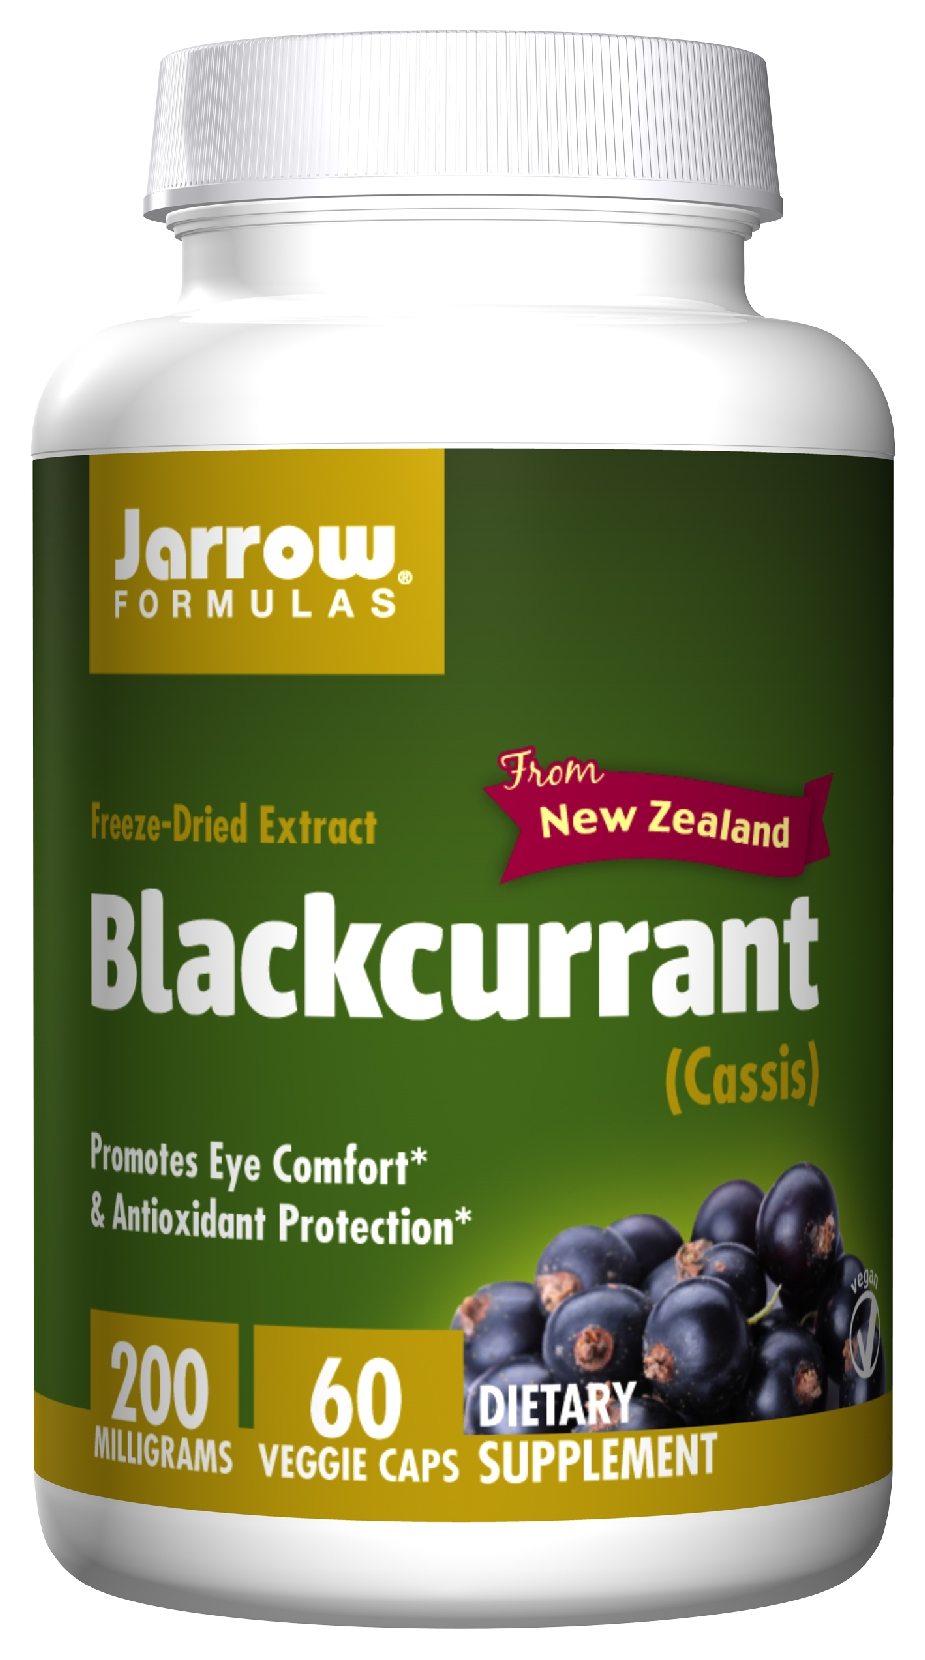 Blackcurrant 60 Vegetarian caps by Jarrow Formulas (expires 09/2015)